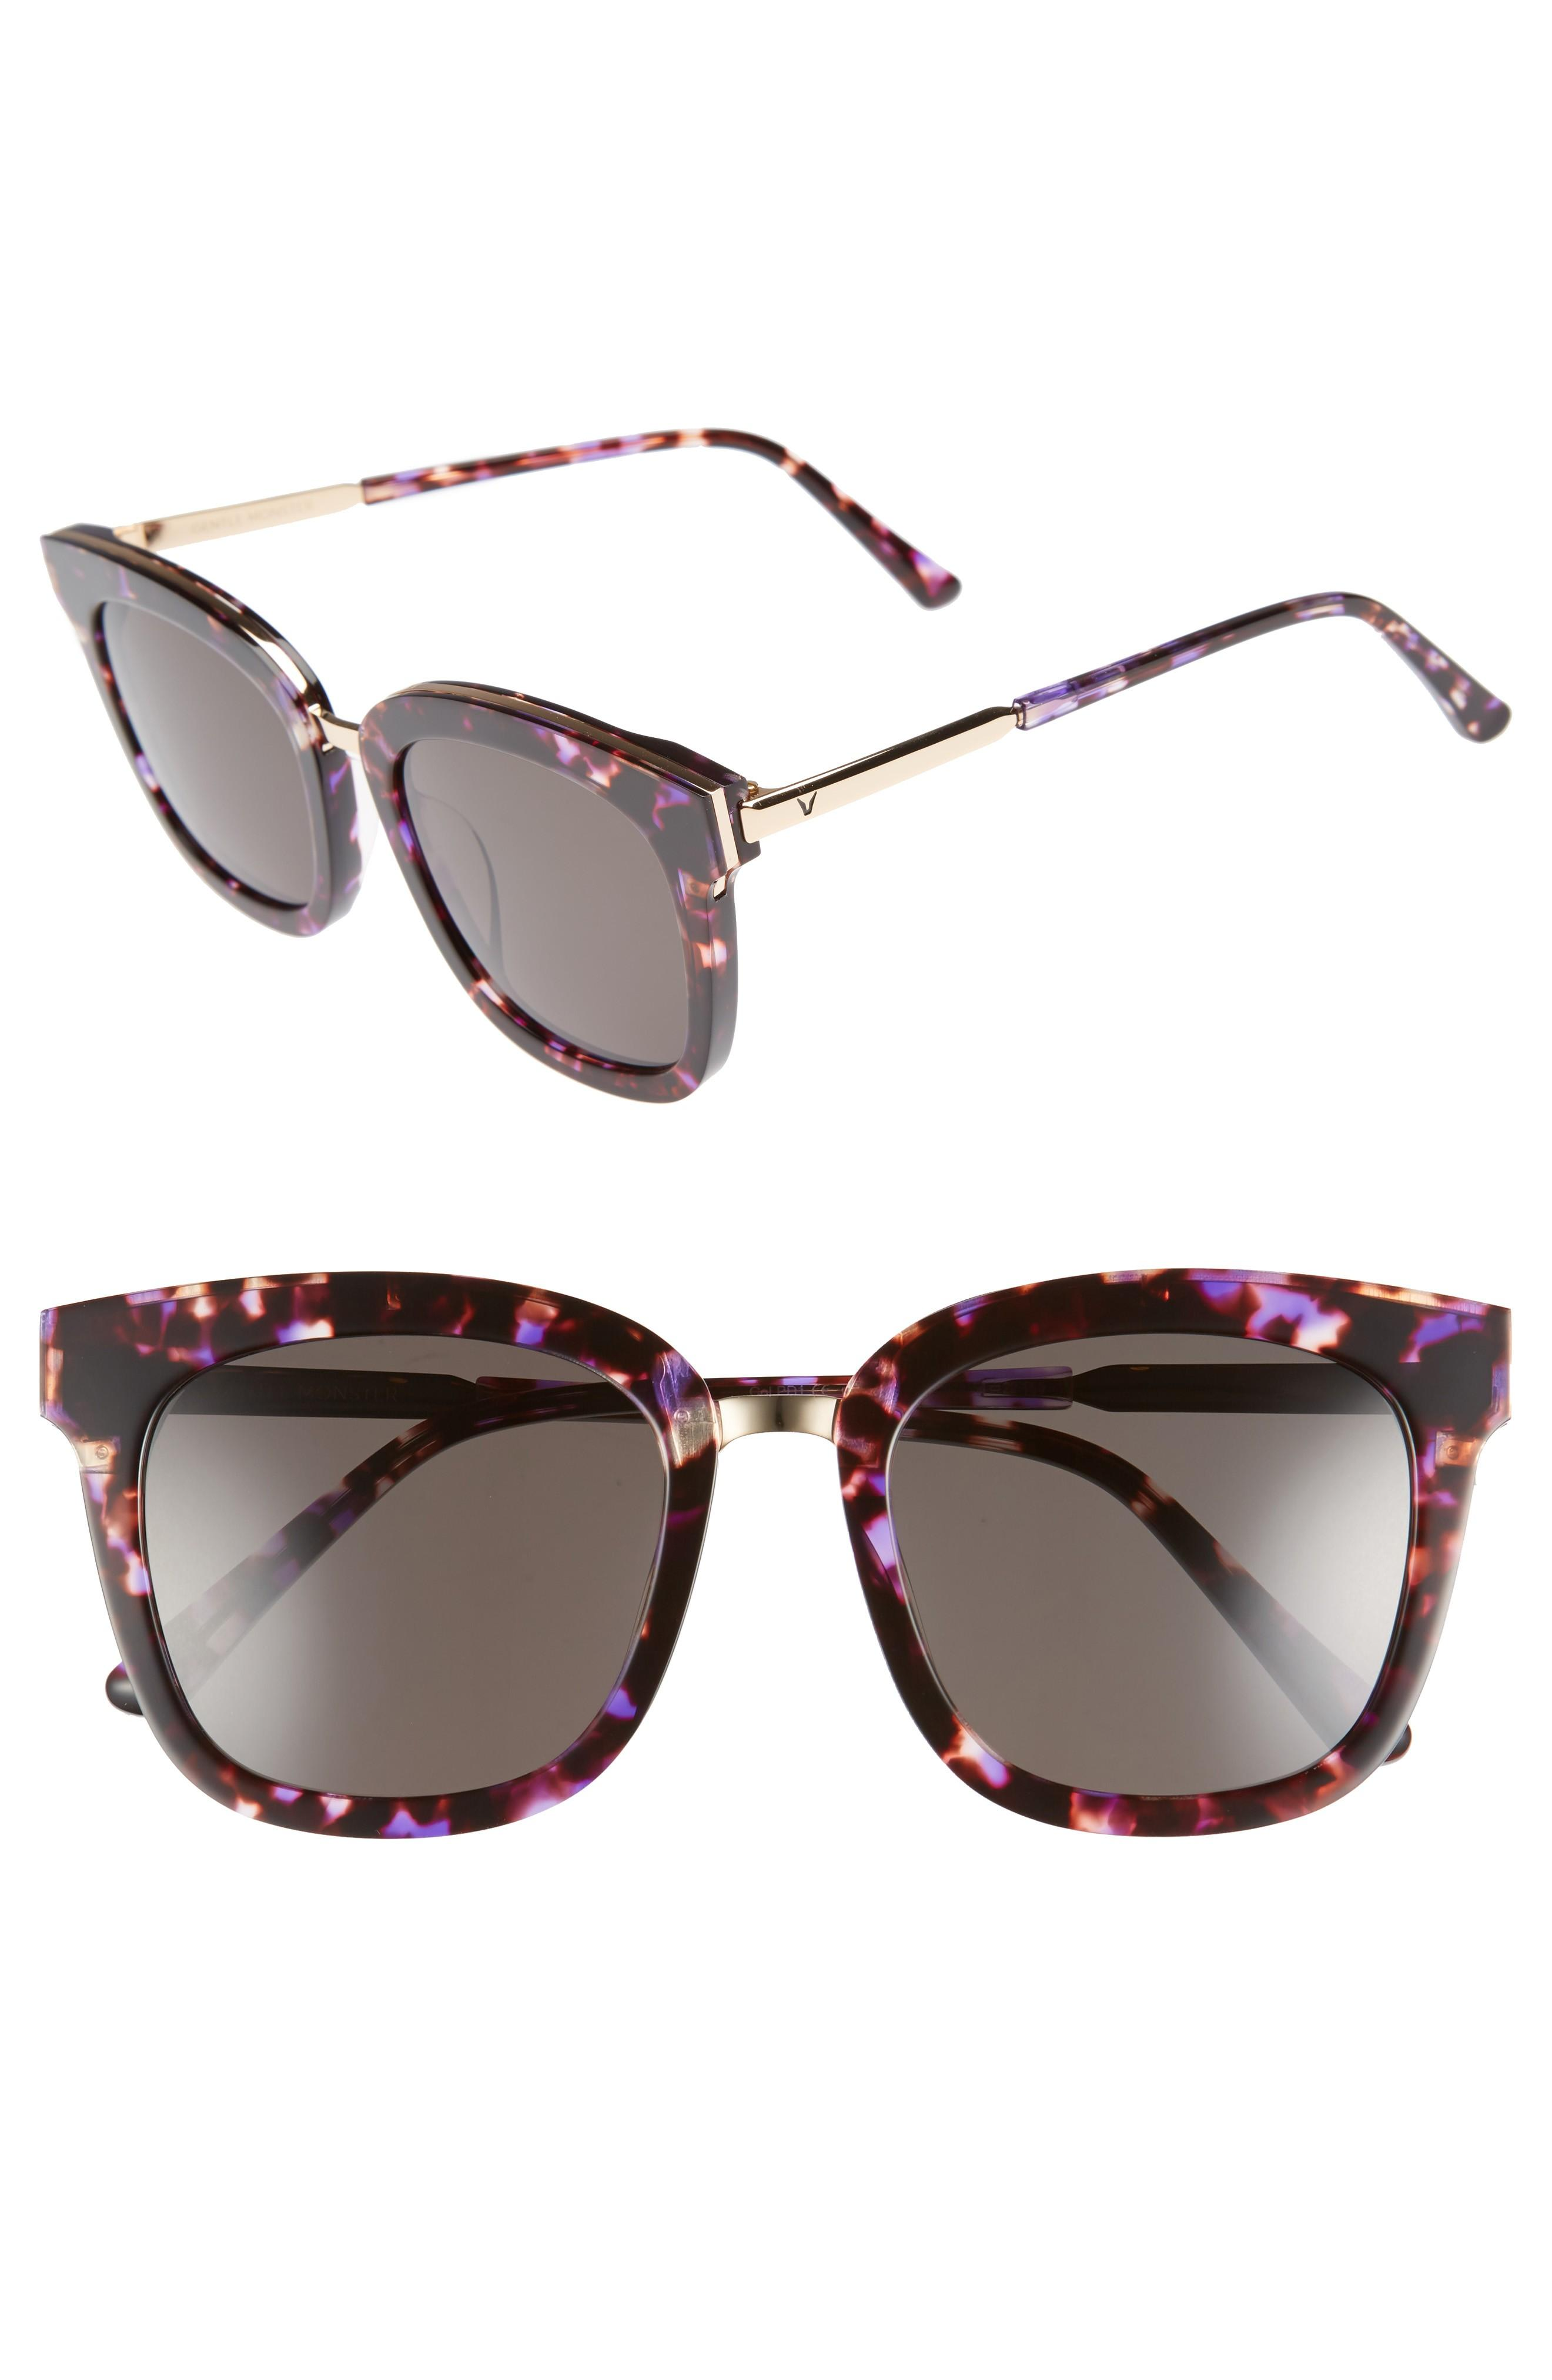 8107f2abc0 Style Name  Gentle Monster Button 54Mm Zeiss Lens Sunglasses. Style Number   5375002. Available in stores.